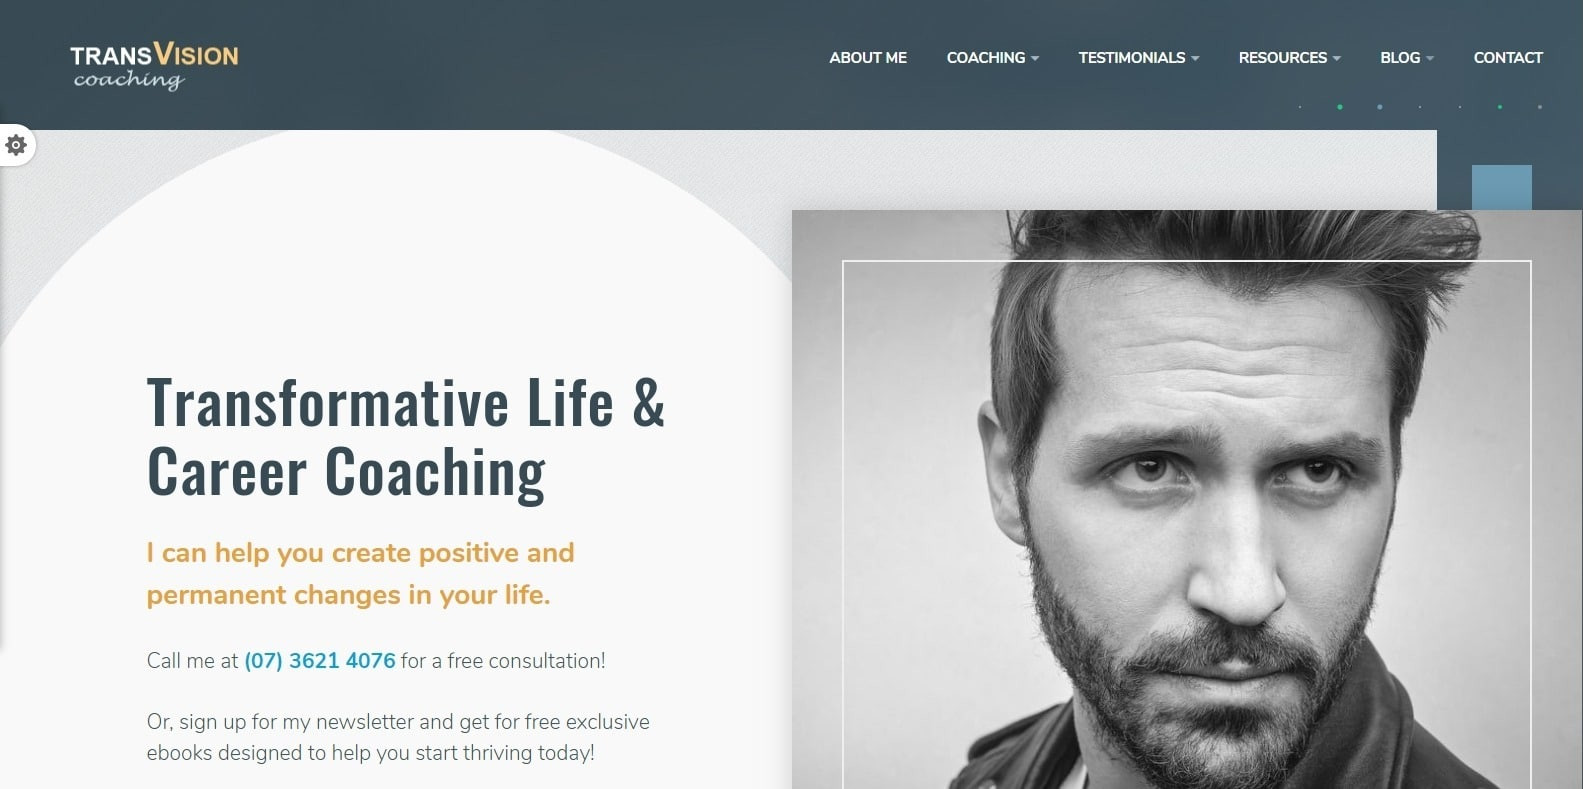 transvision-coaching-website template